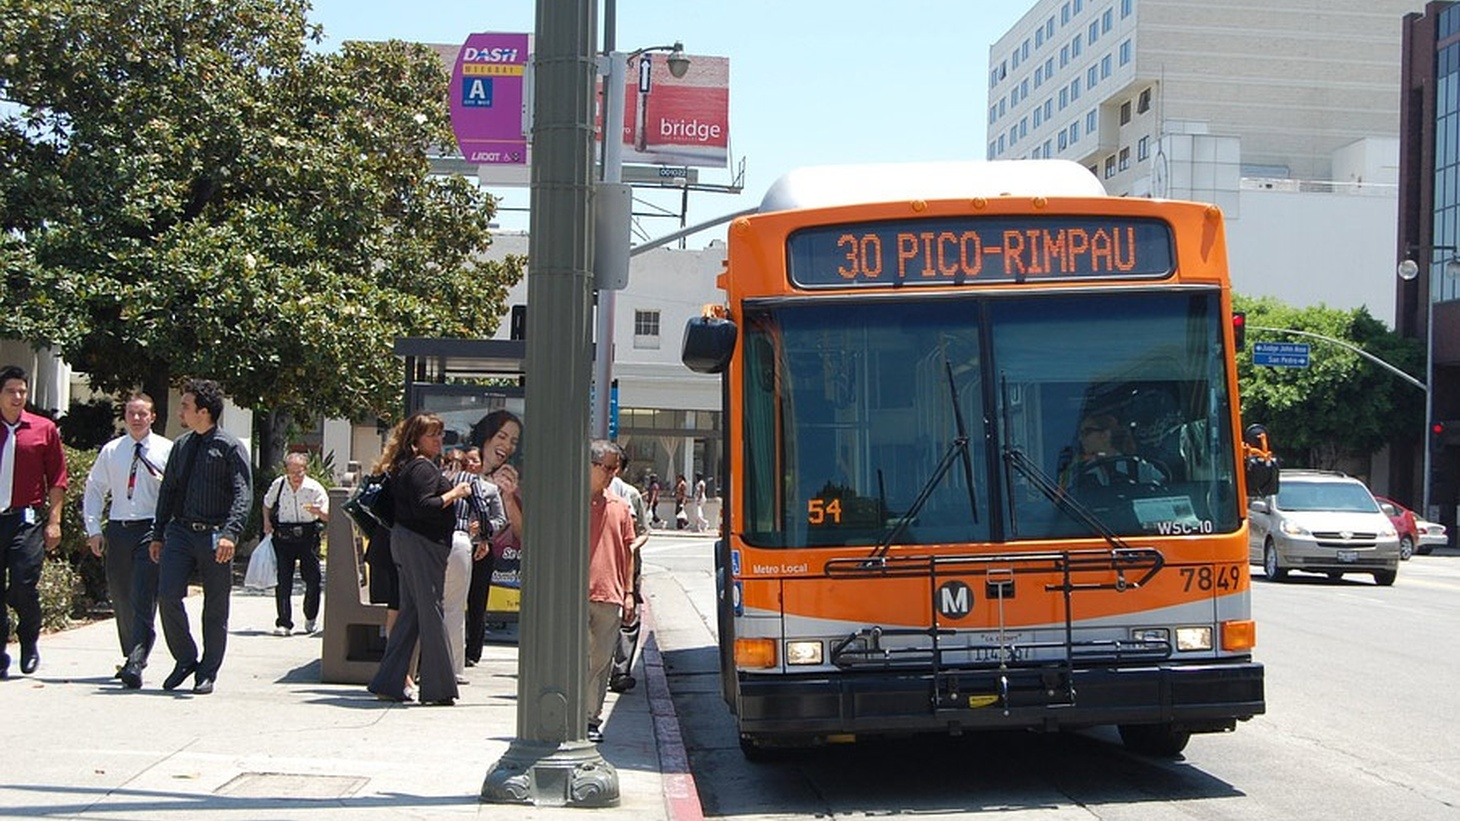 Ridership on LA Metro buses continues to decline across Los Angeles. Passengers say the service needs improvement. Metro now wants to overhaul the system's 170 lines and 15,000 stops, and is conducting a study due out in April, 2019. How are other cities dealing with this issue?